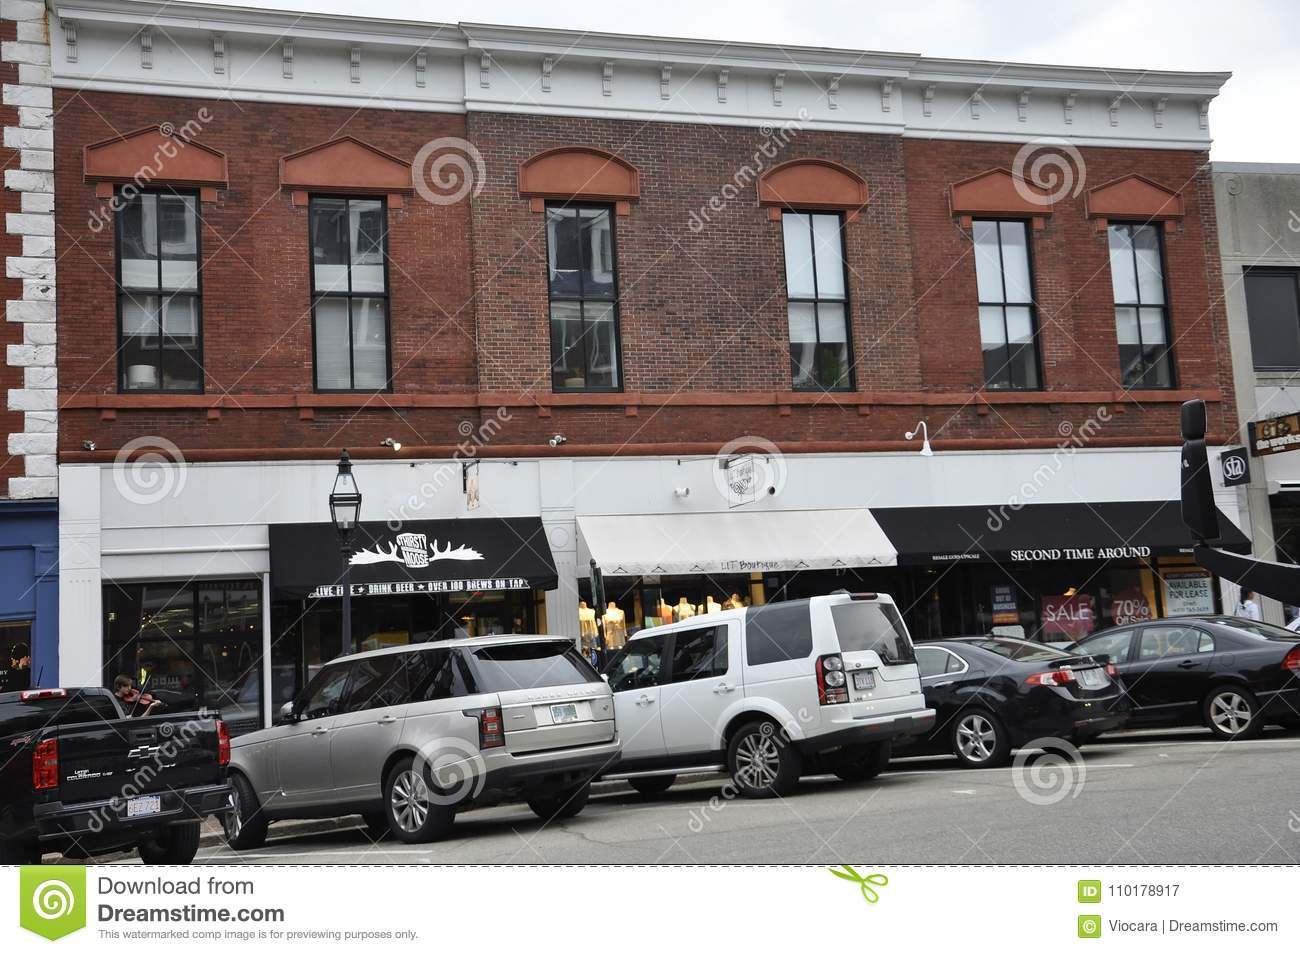 Portsmouth, 30th June: Historic Buildings from Downtown Portsmouth in New Hampshire of USA